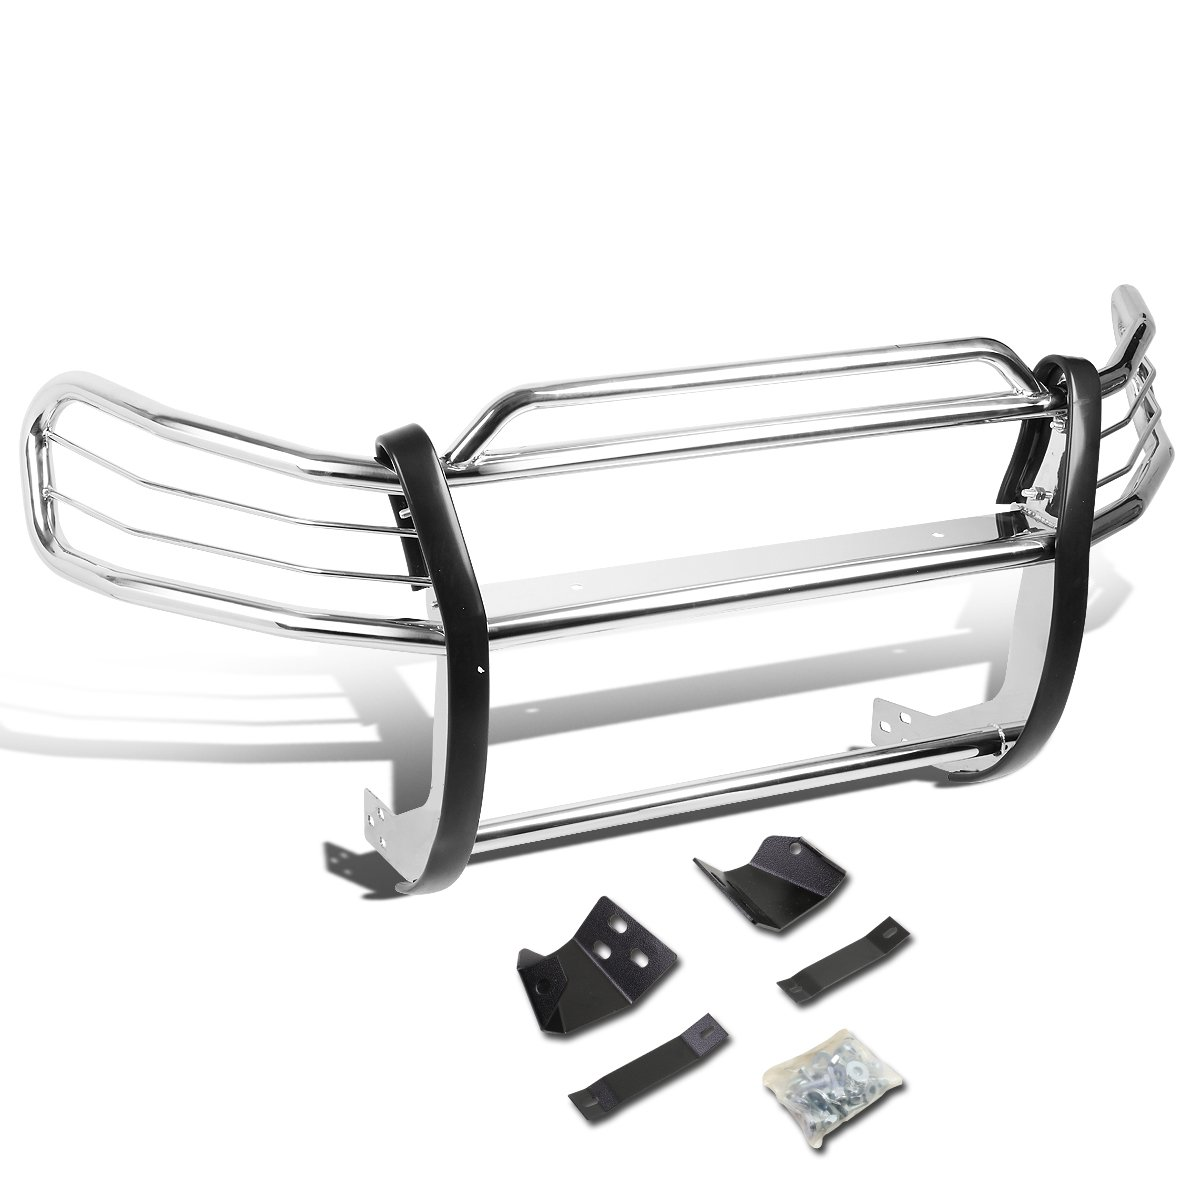 DNA MOTORING Silver GRILL-G-058-SS Front Bumper Brush Grille Guard ...